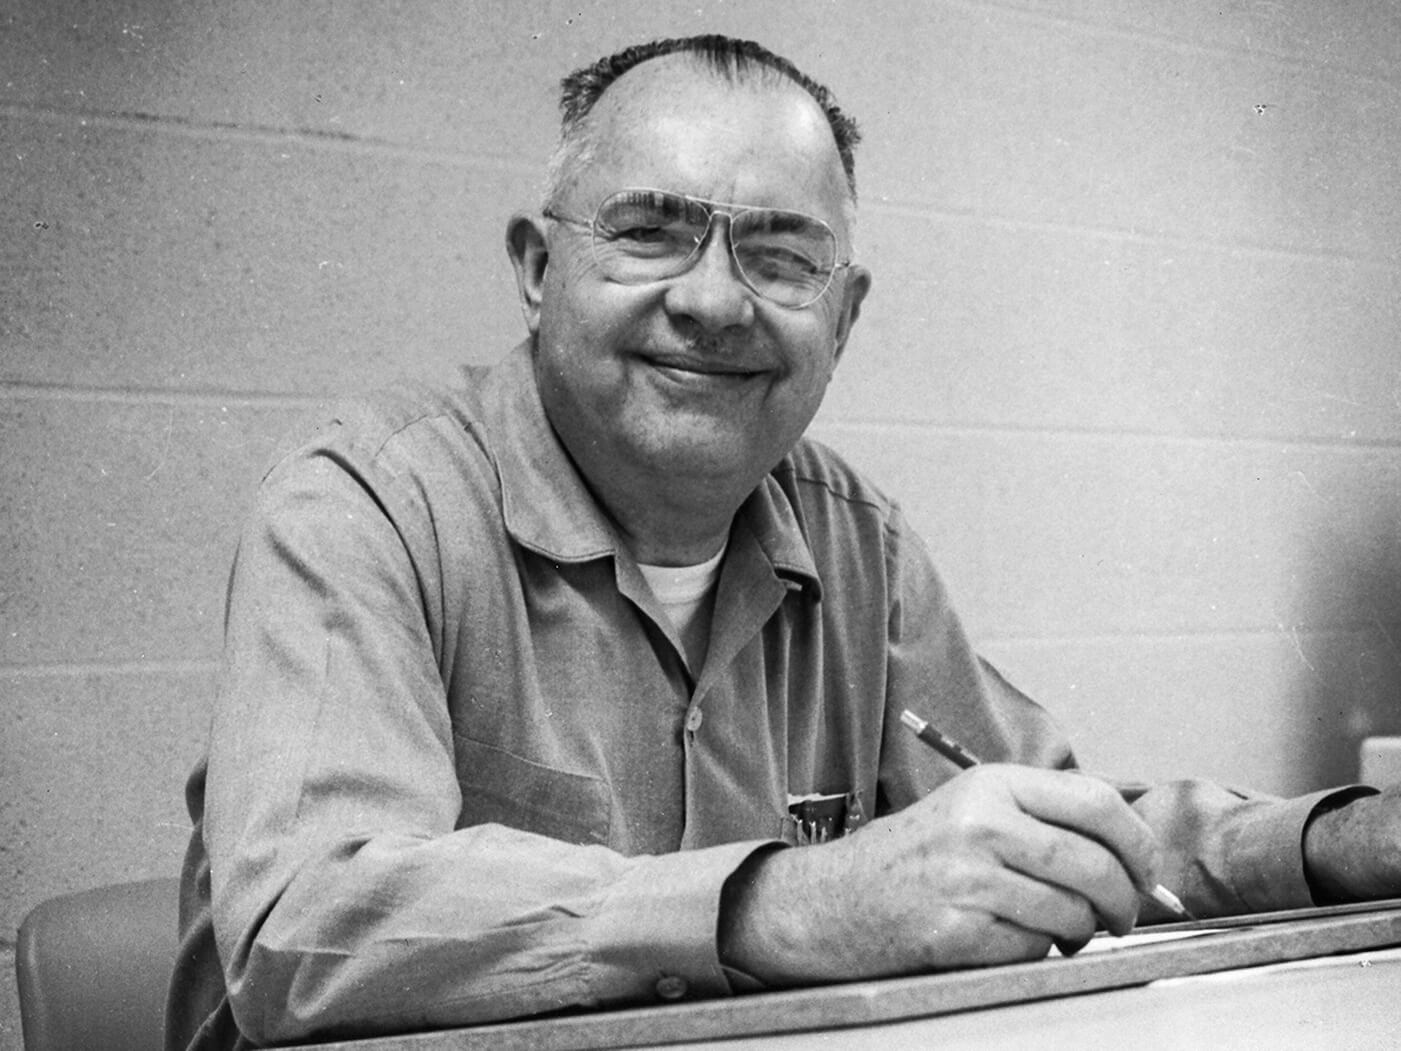 Portrait of Leo Fender